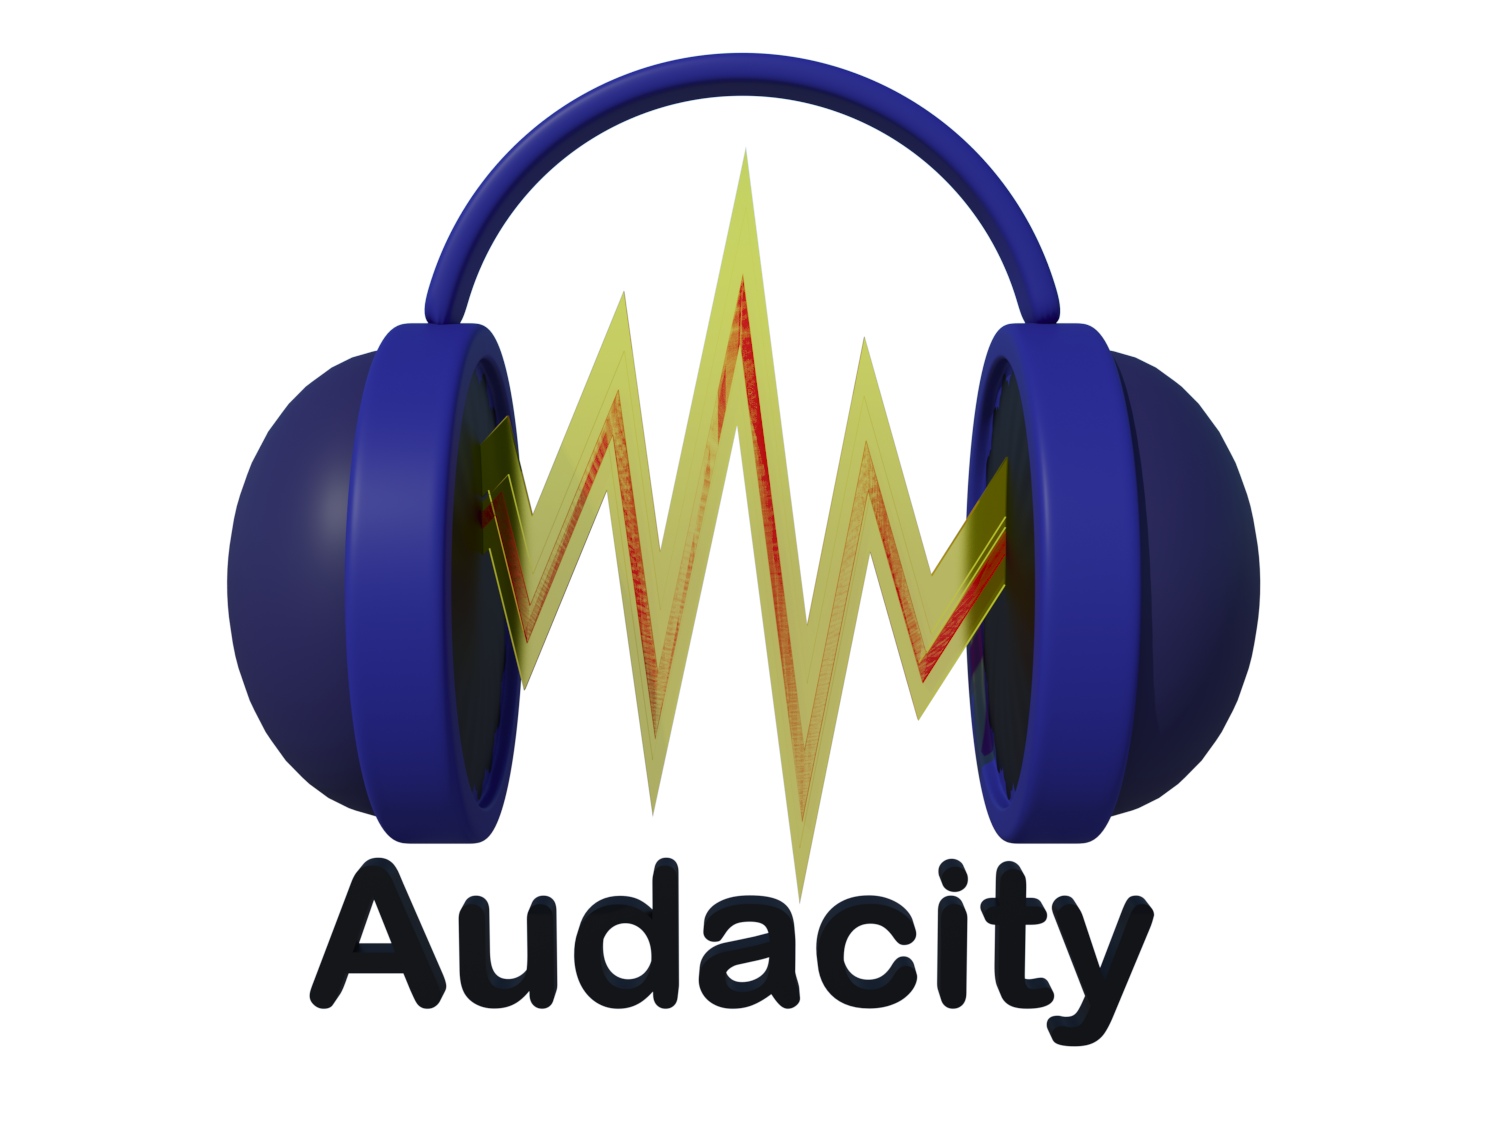 Audacity 2.4.2 Crack with Keygen 2020 Free Download Here